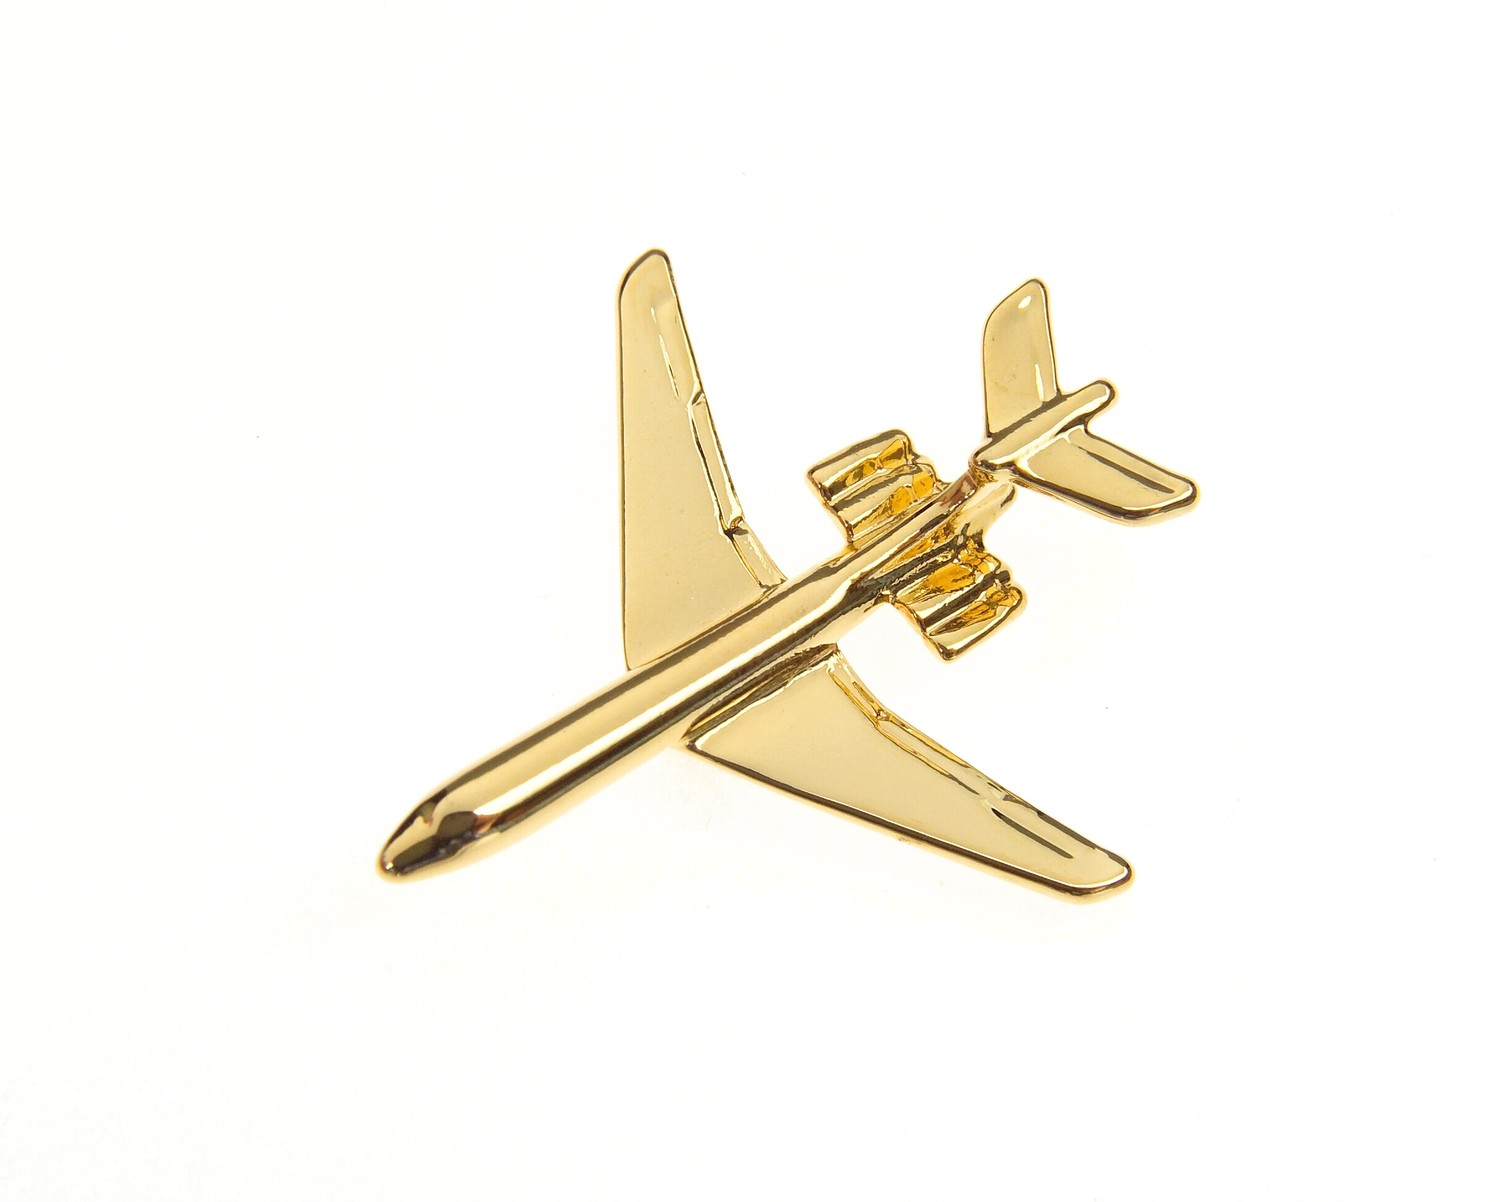 VC10 'Shiny 10' Gold Plated Tie / Lapel Pin